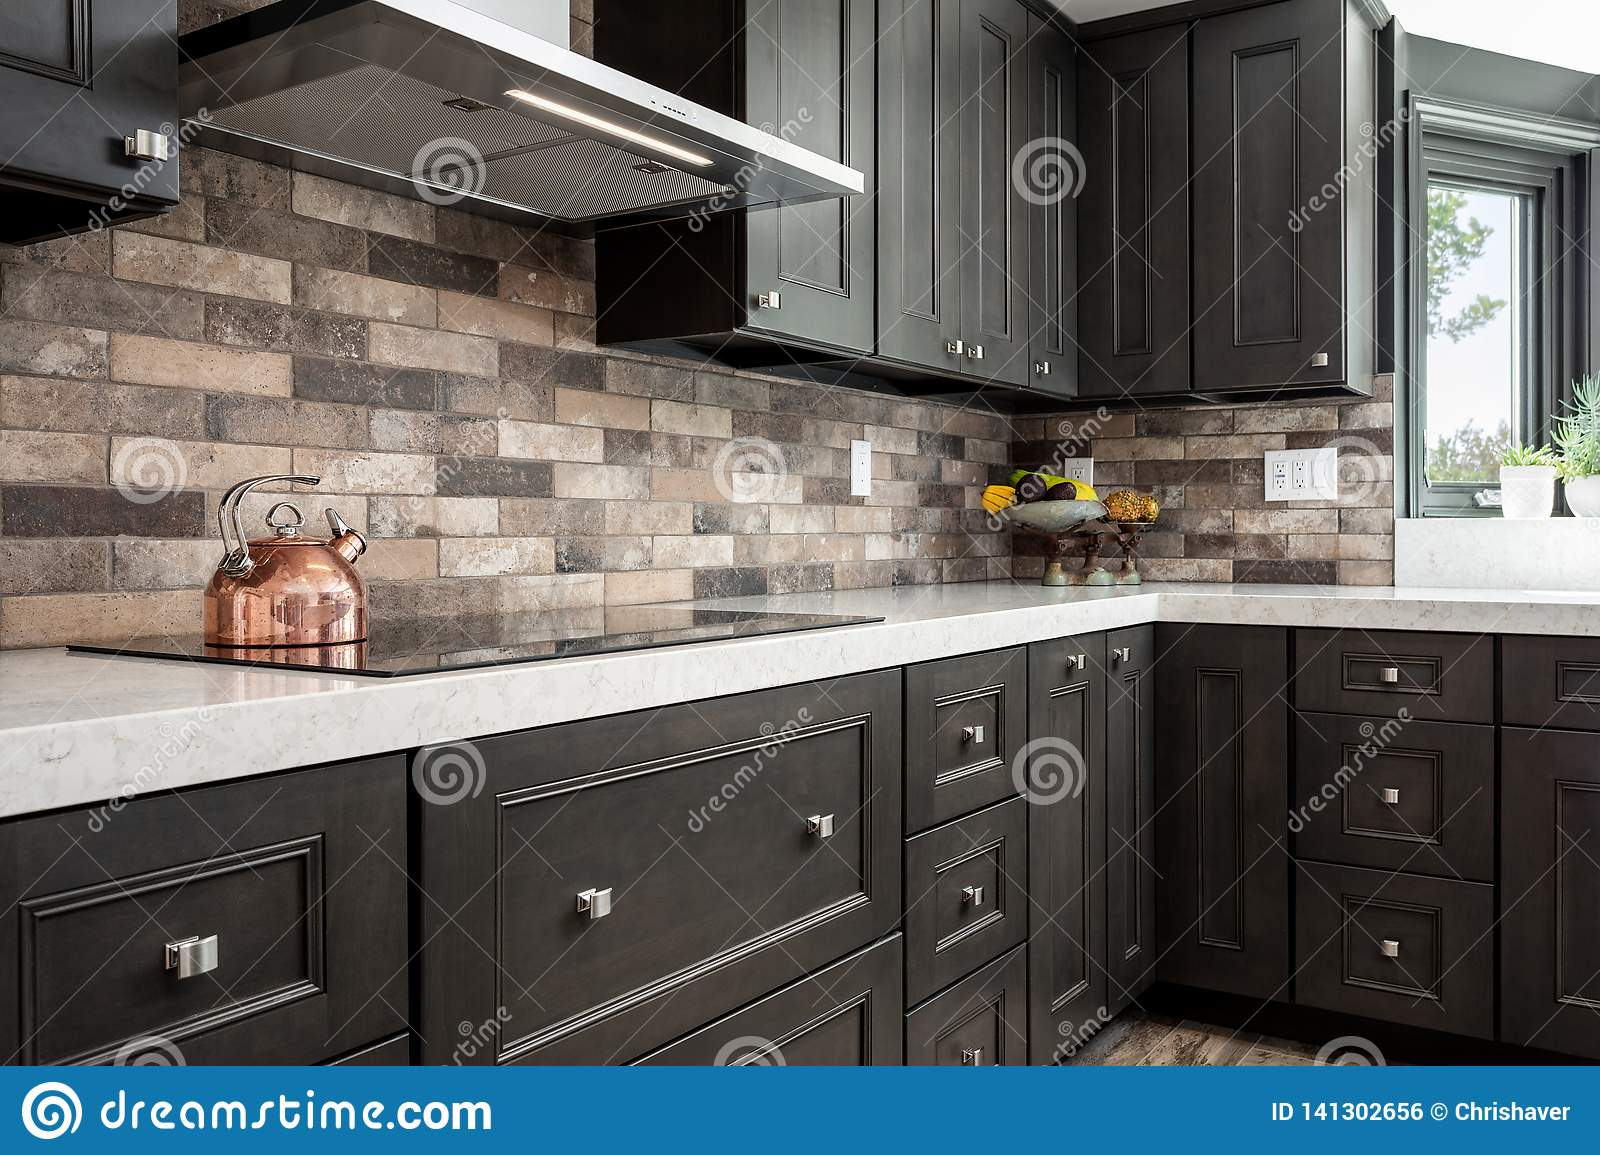 Home Design Remodel Dark Kitchen Cabinets With Stone Back